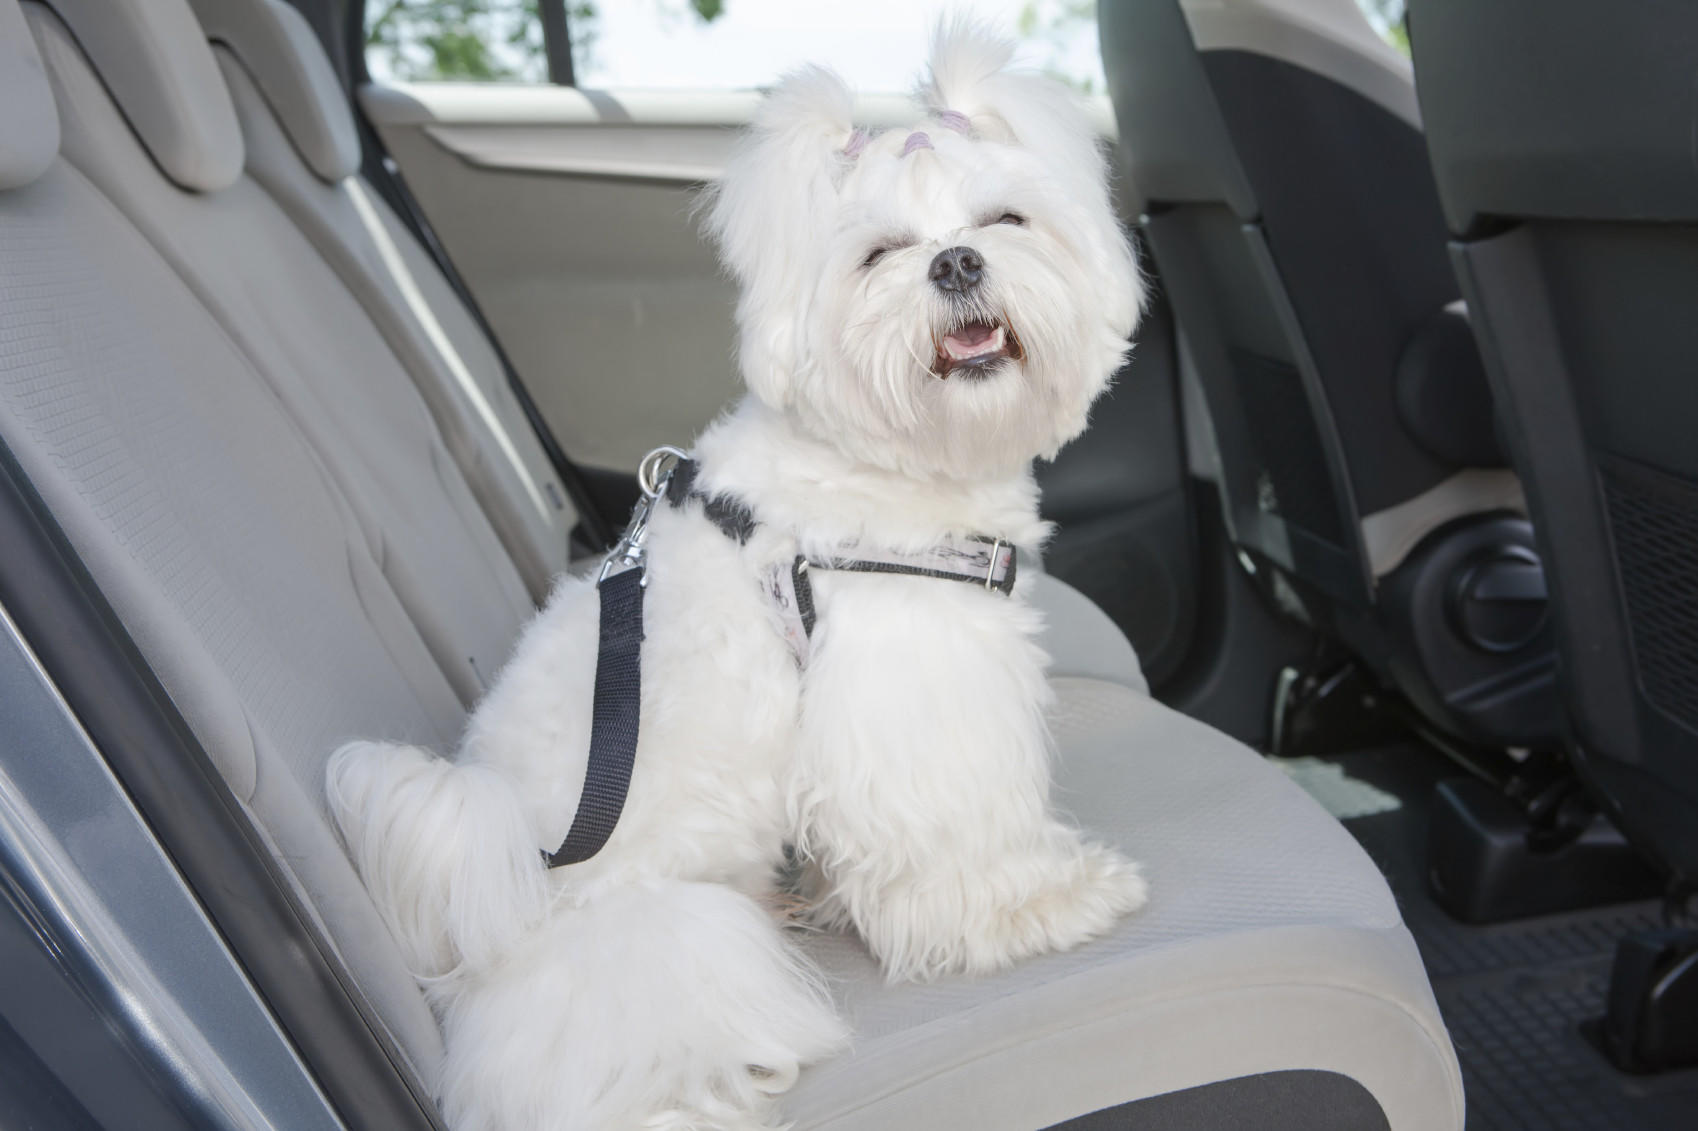 Dr. David Tayman advises pet owners to secure animals in crates, carriers or harnesses when traveling in the car.